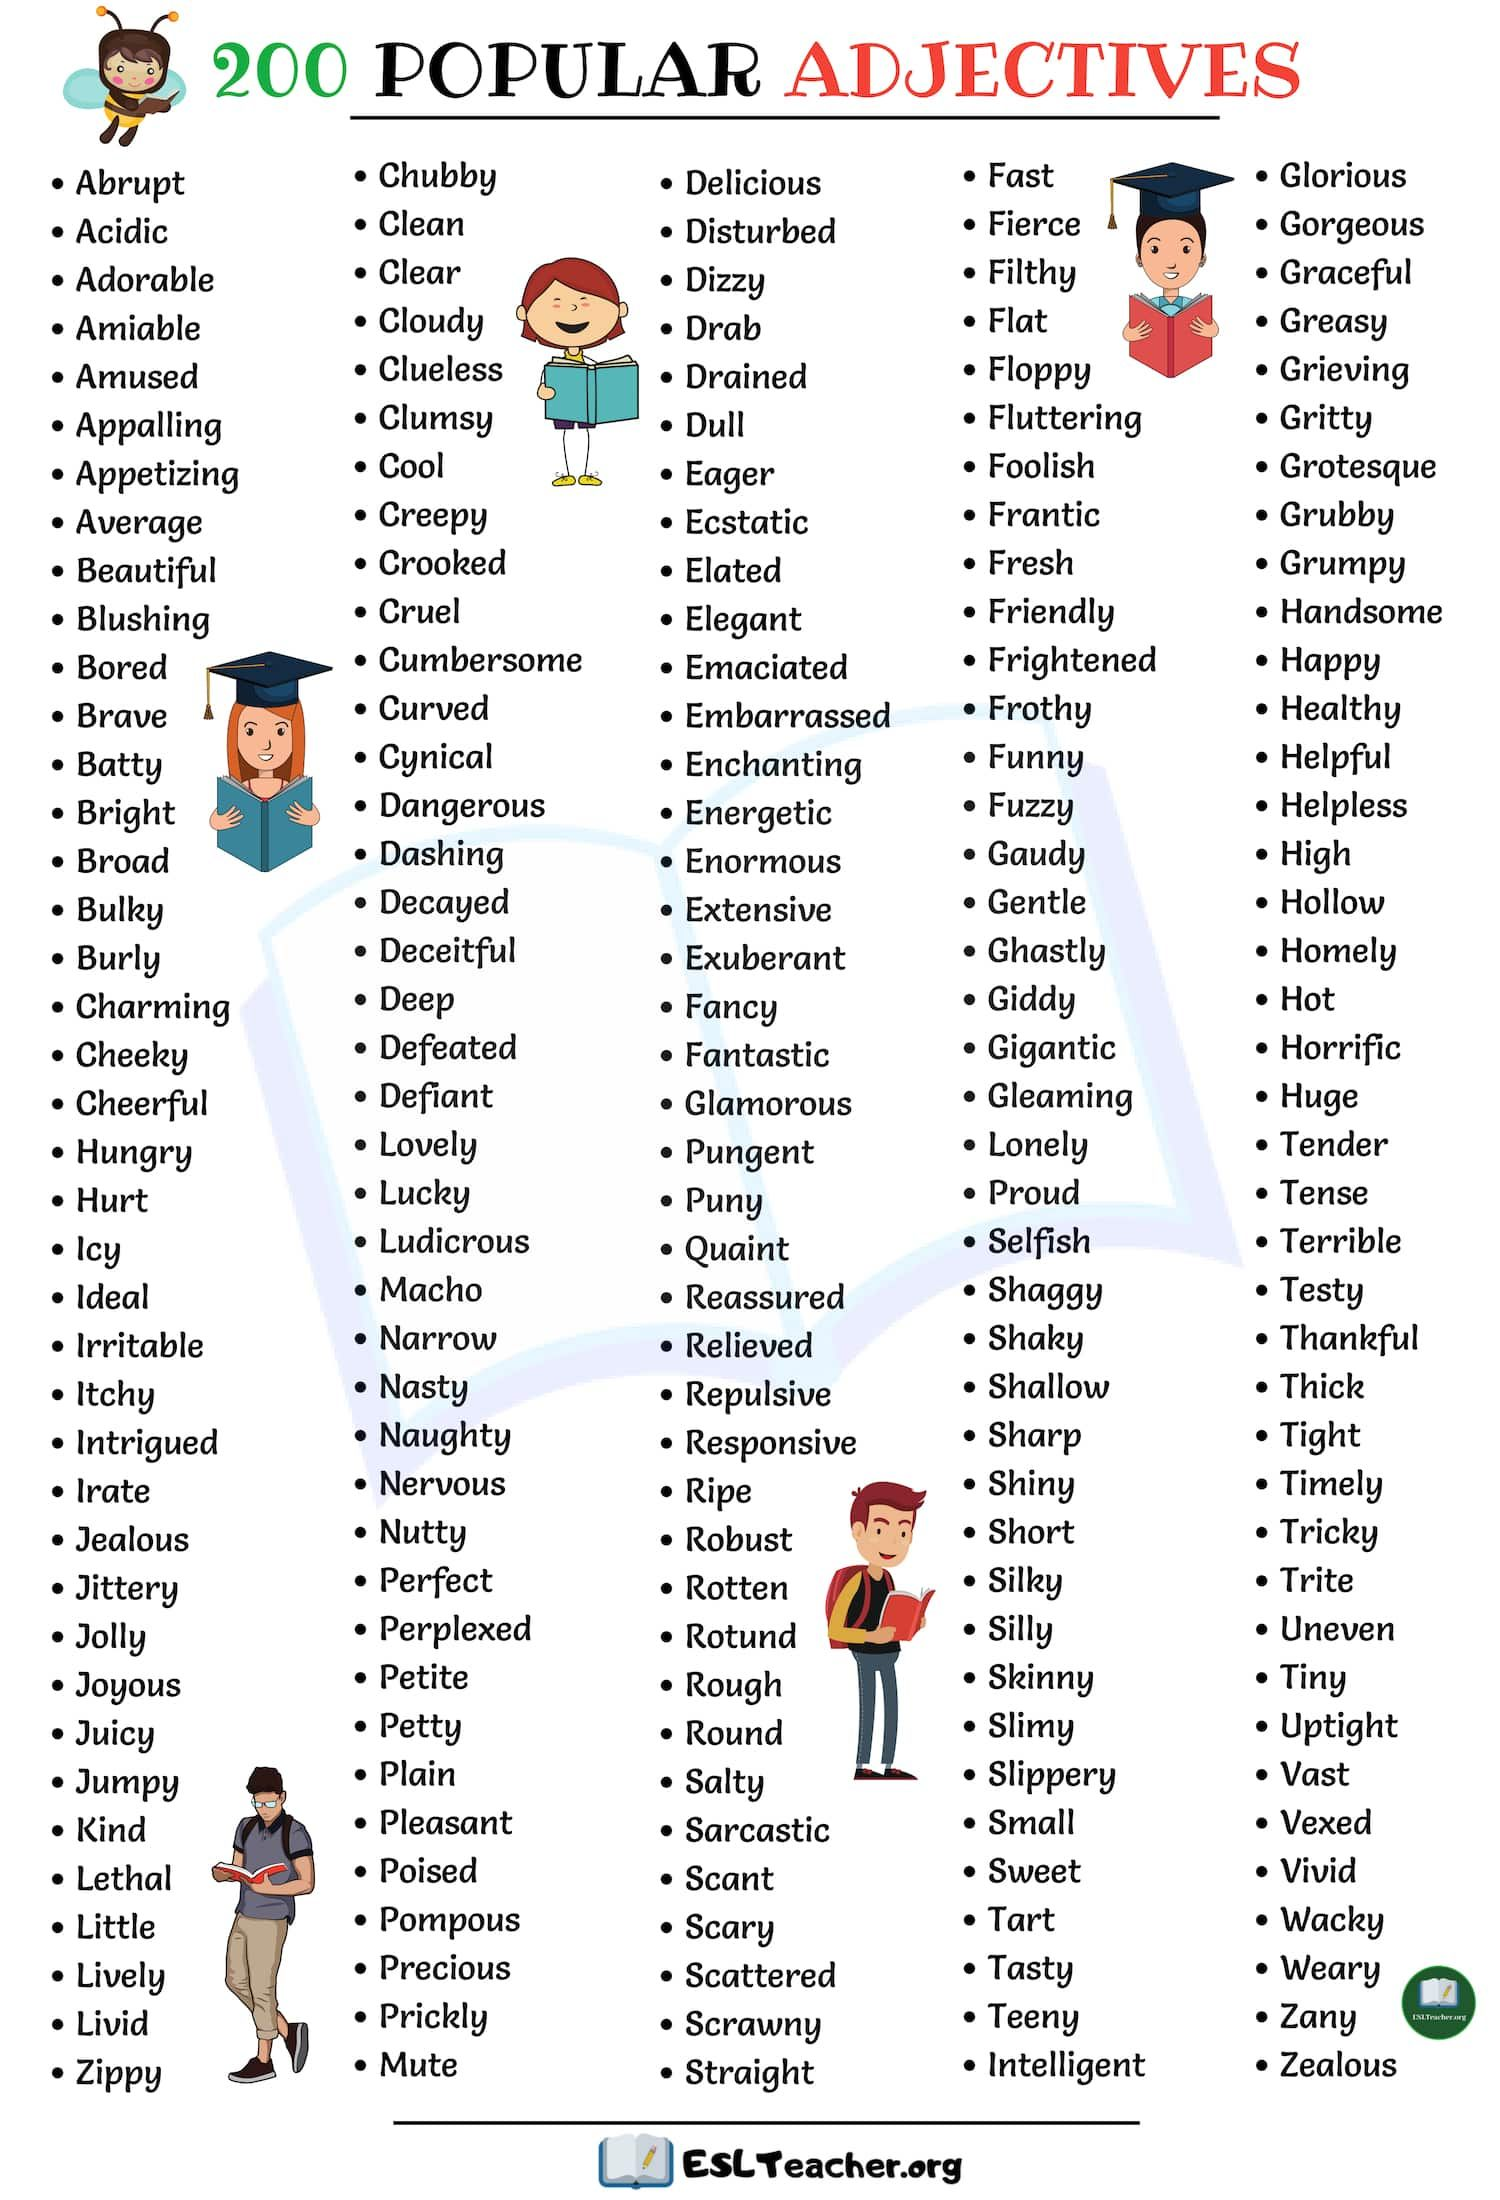 List Of Adjectives 200 Popular Adjectives In English